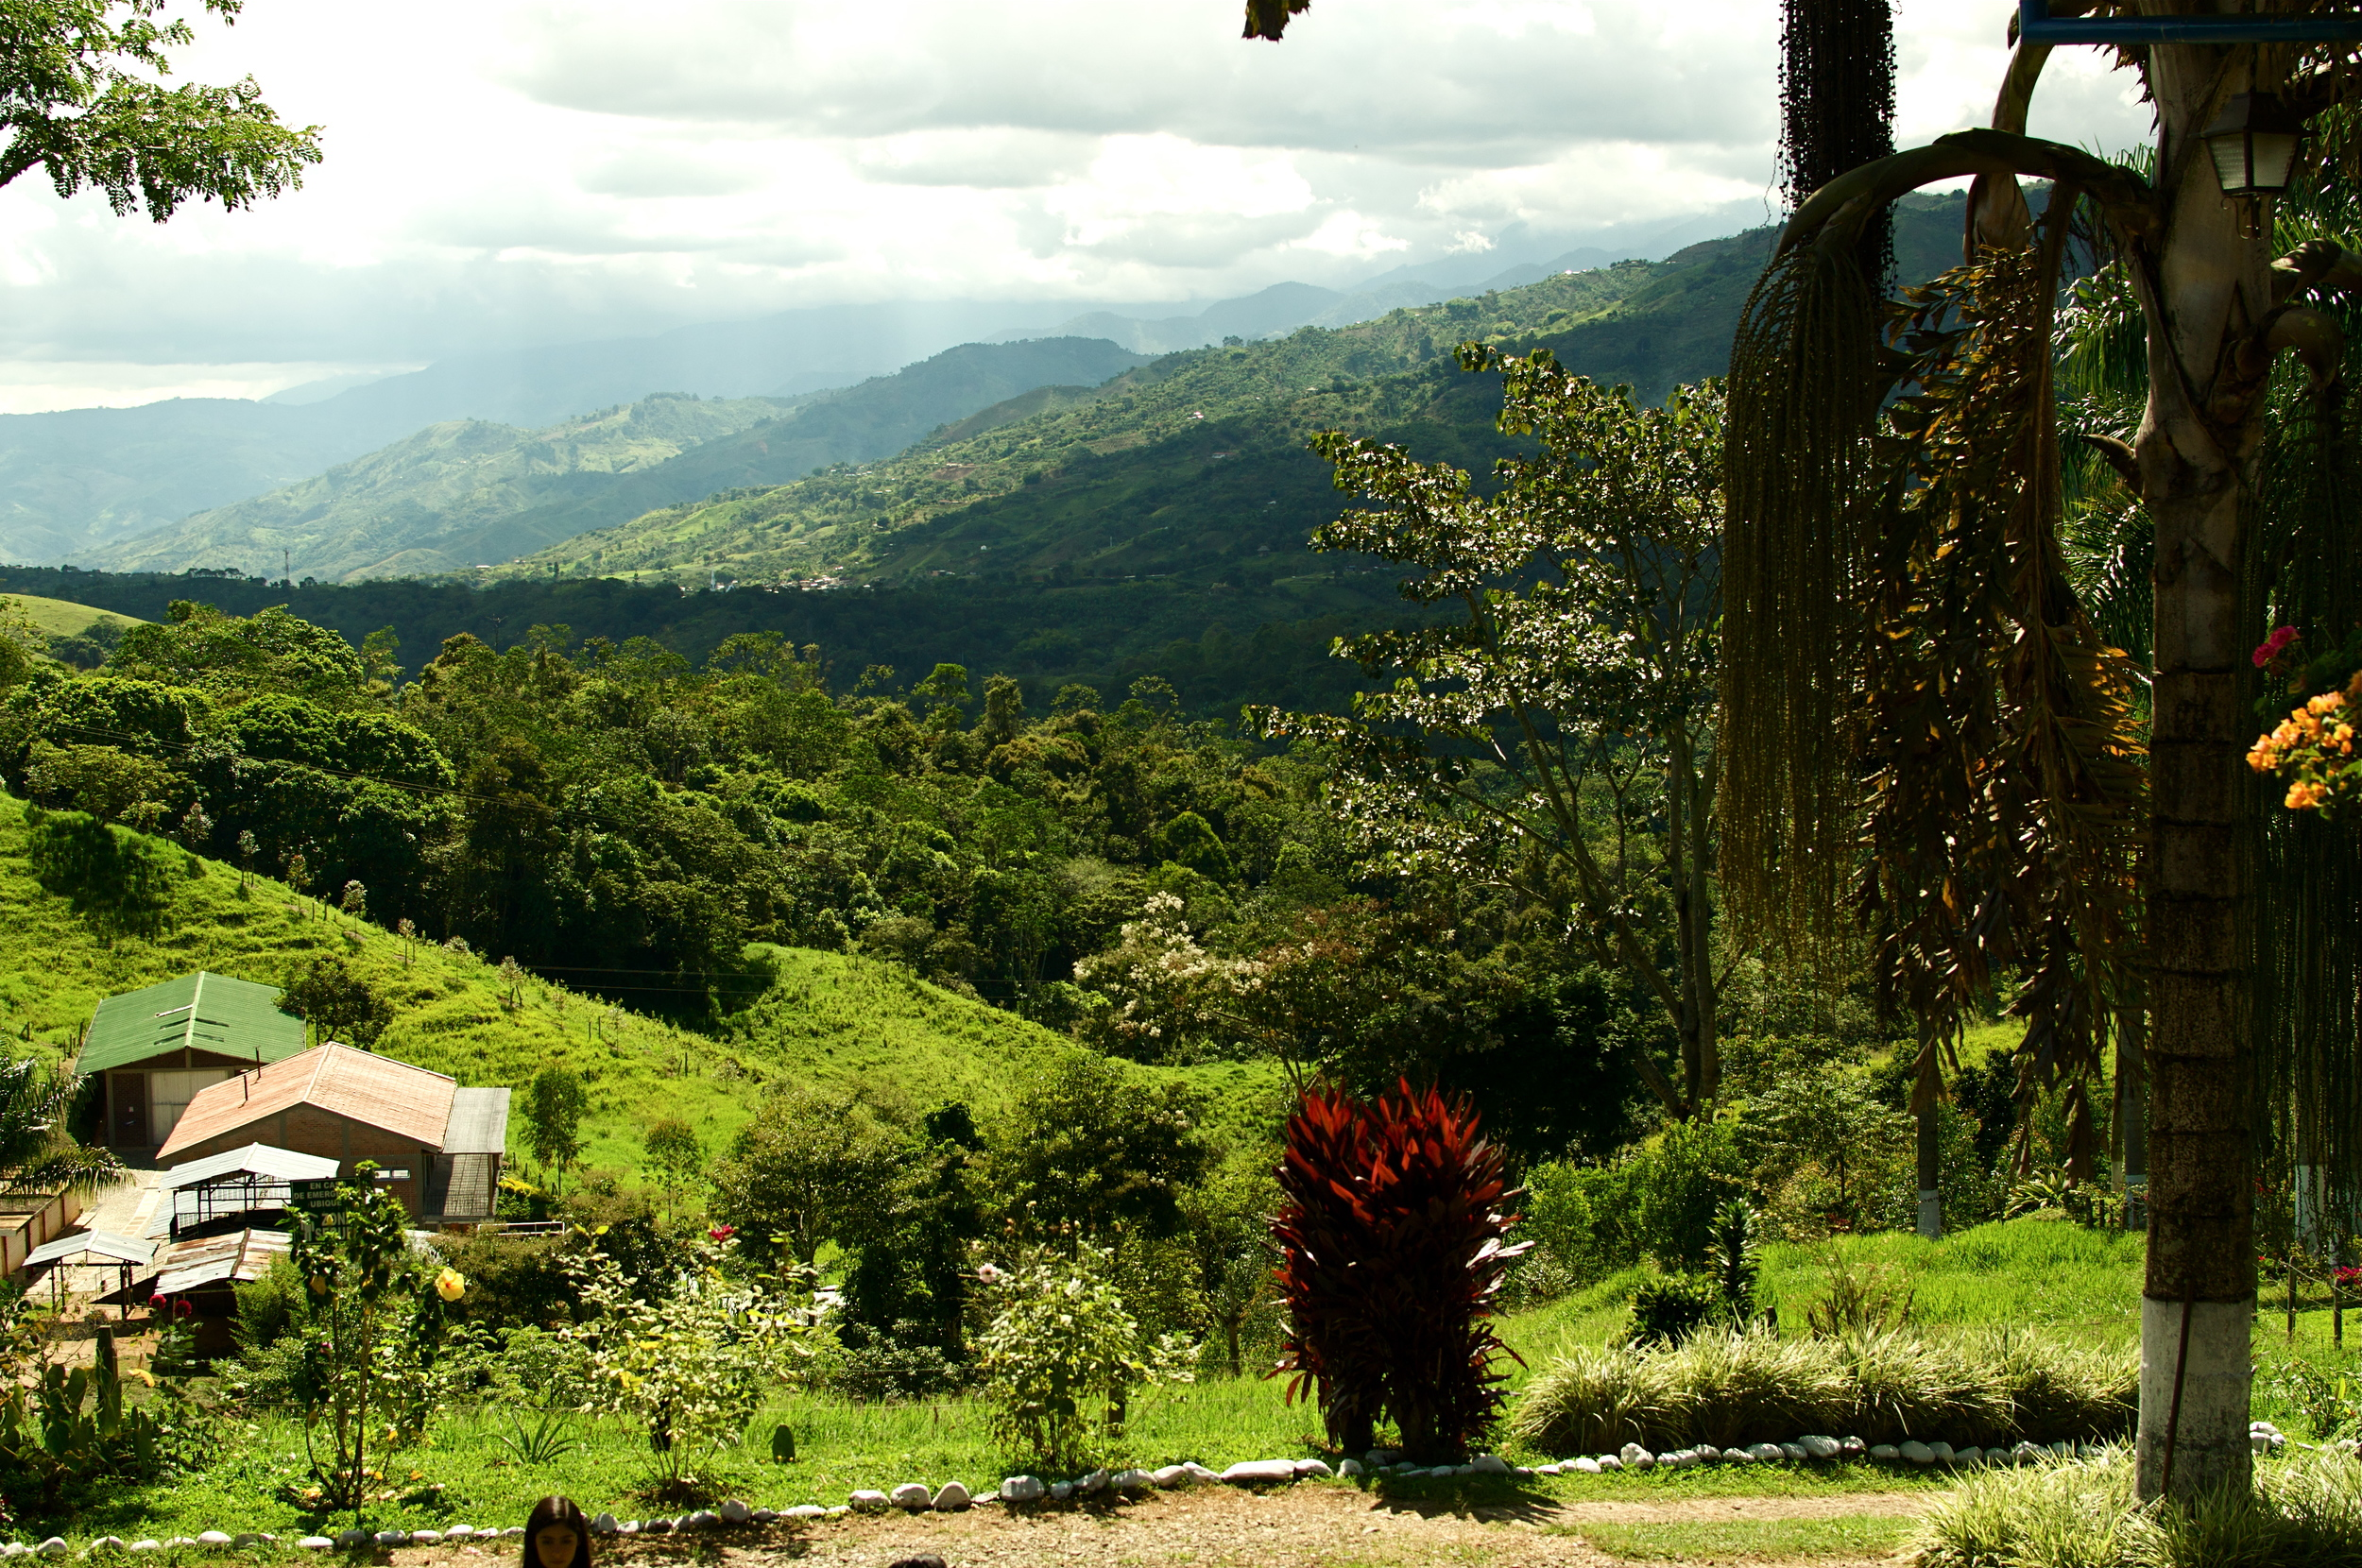 The view from the house at La Esperanza overlooking the  Trujillo Valley in the Valle del Cauca region.